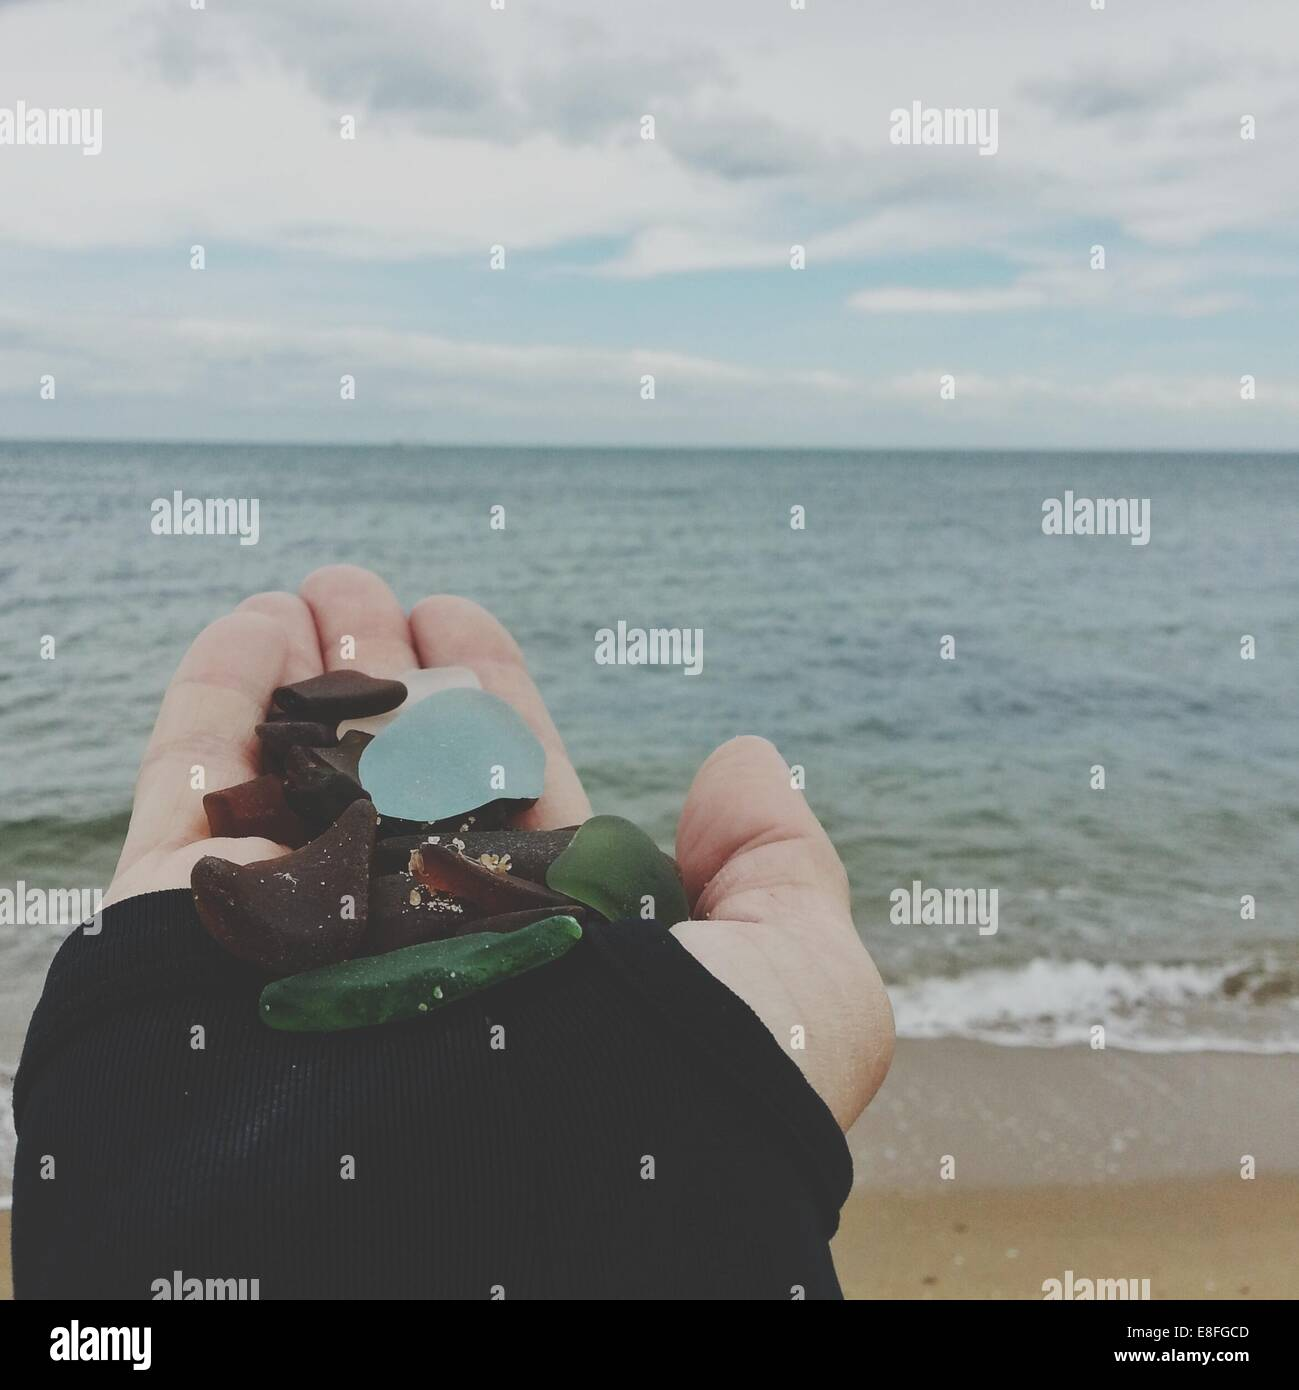 Woman's hand holding pebbles on beach - Stock Image